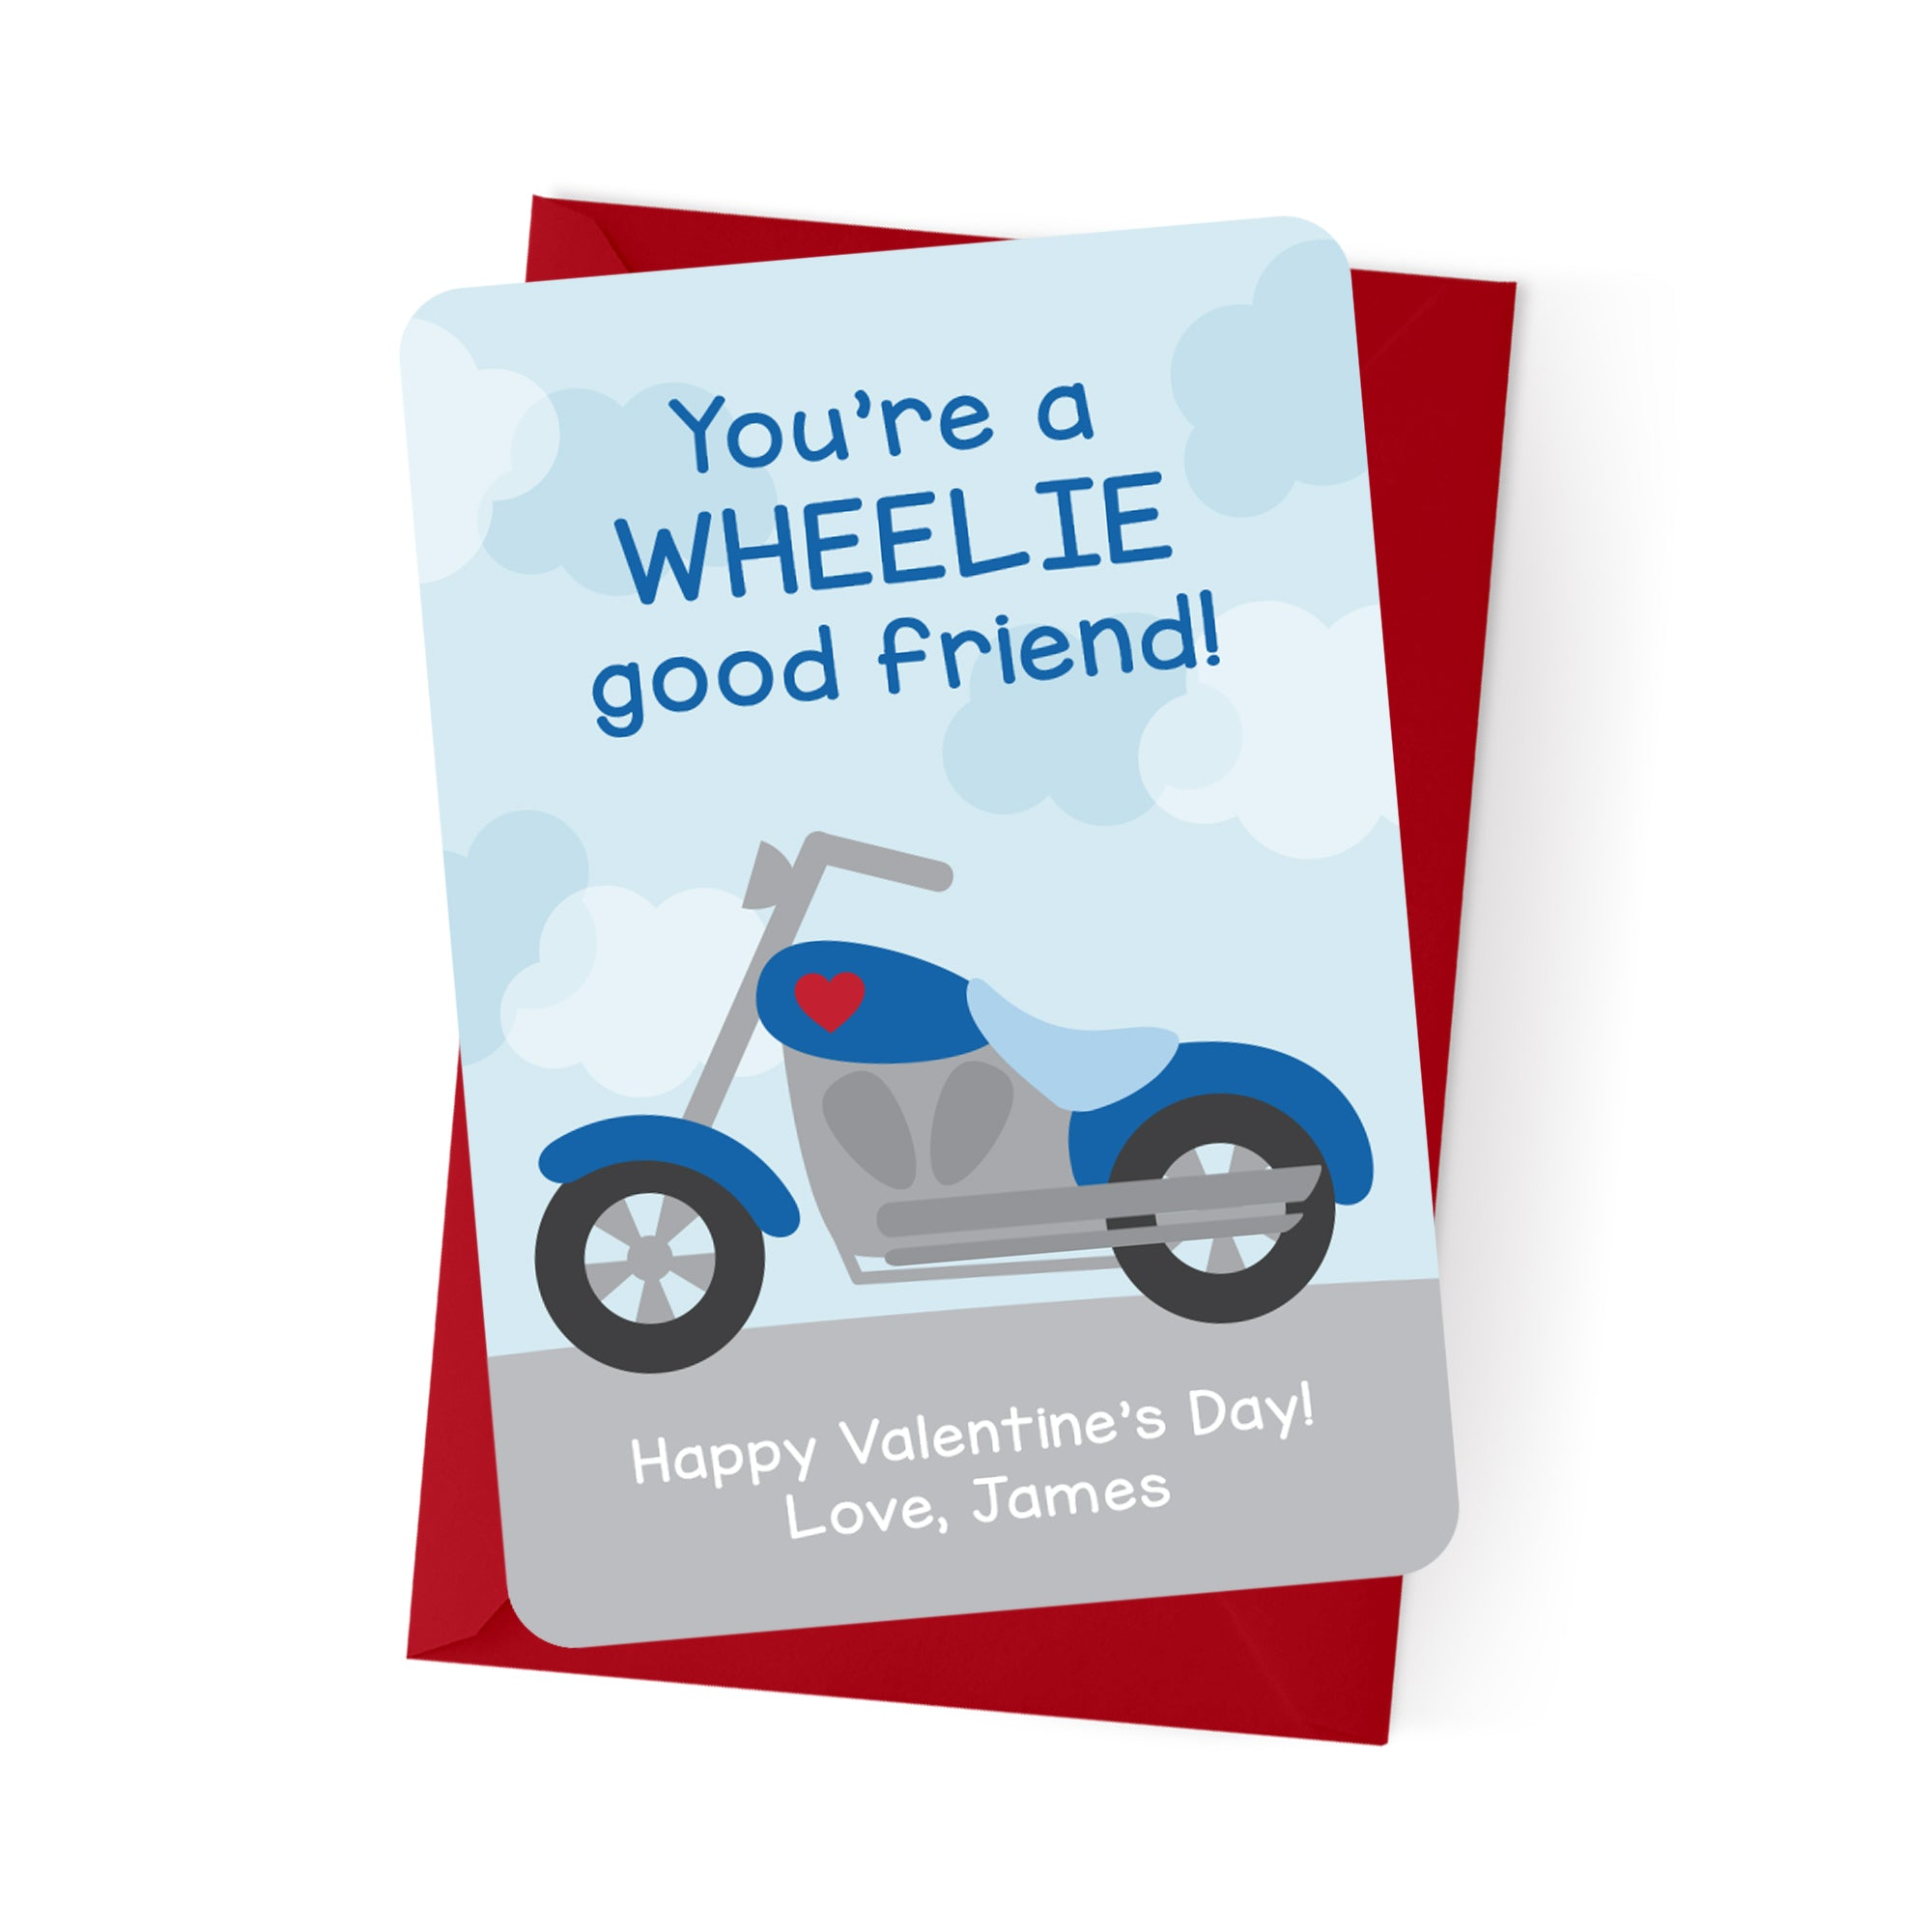 Motorcycle Personalized Valentine's Day Cards